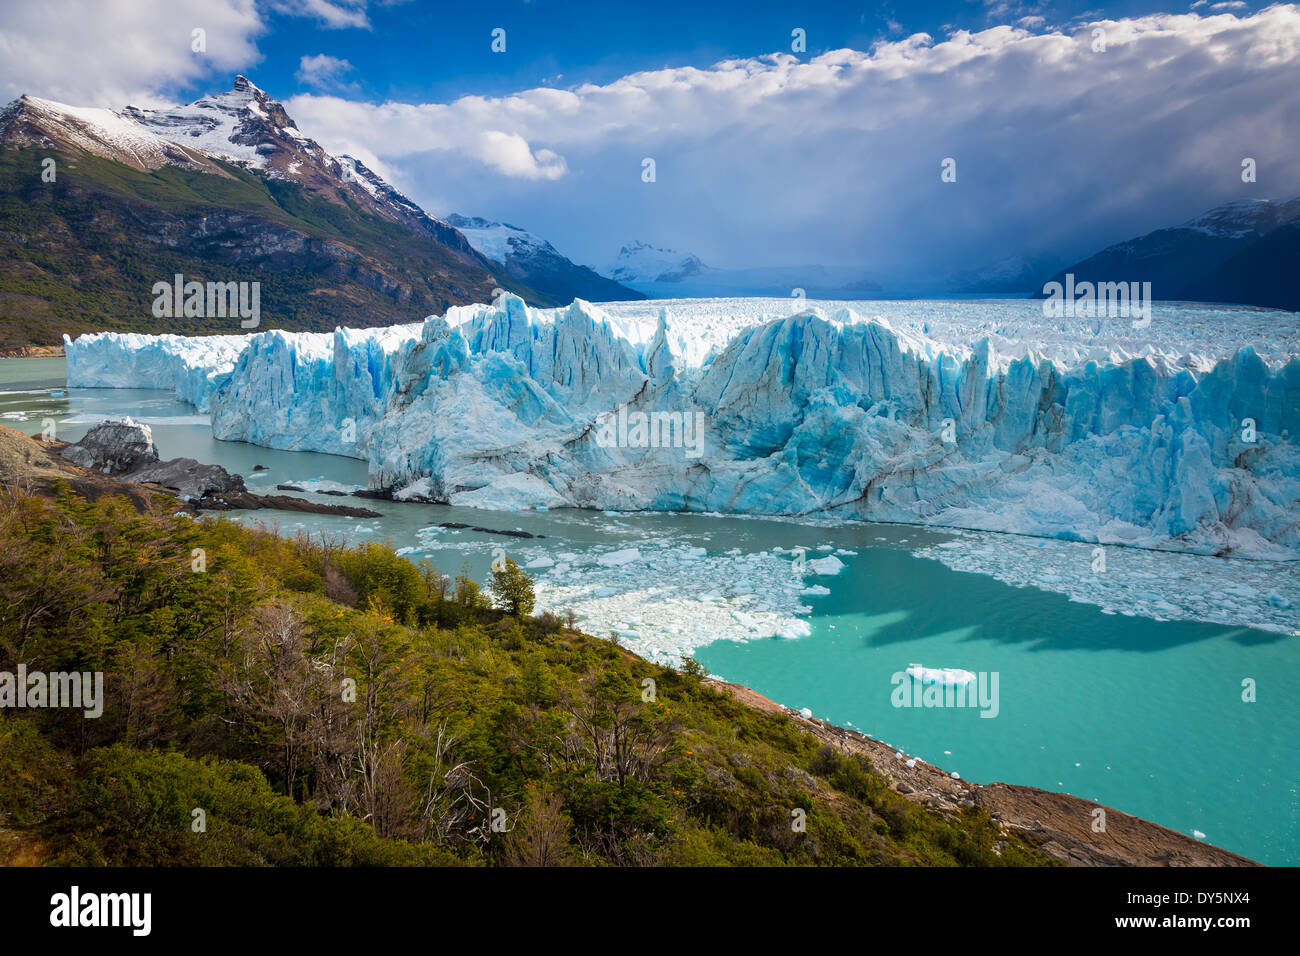 The Perito Moreno Glacier is a glacier located in the Los Glaciares National Park in southwest Santa Cruz province, Argentina. - Stock Image